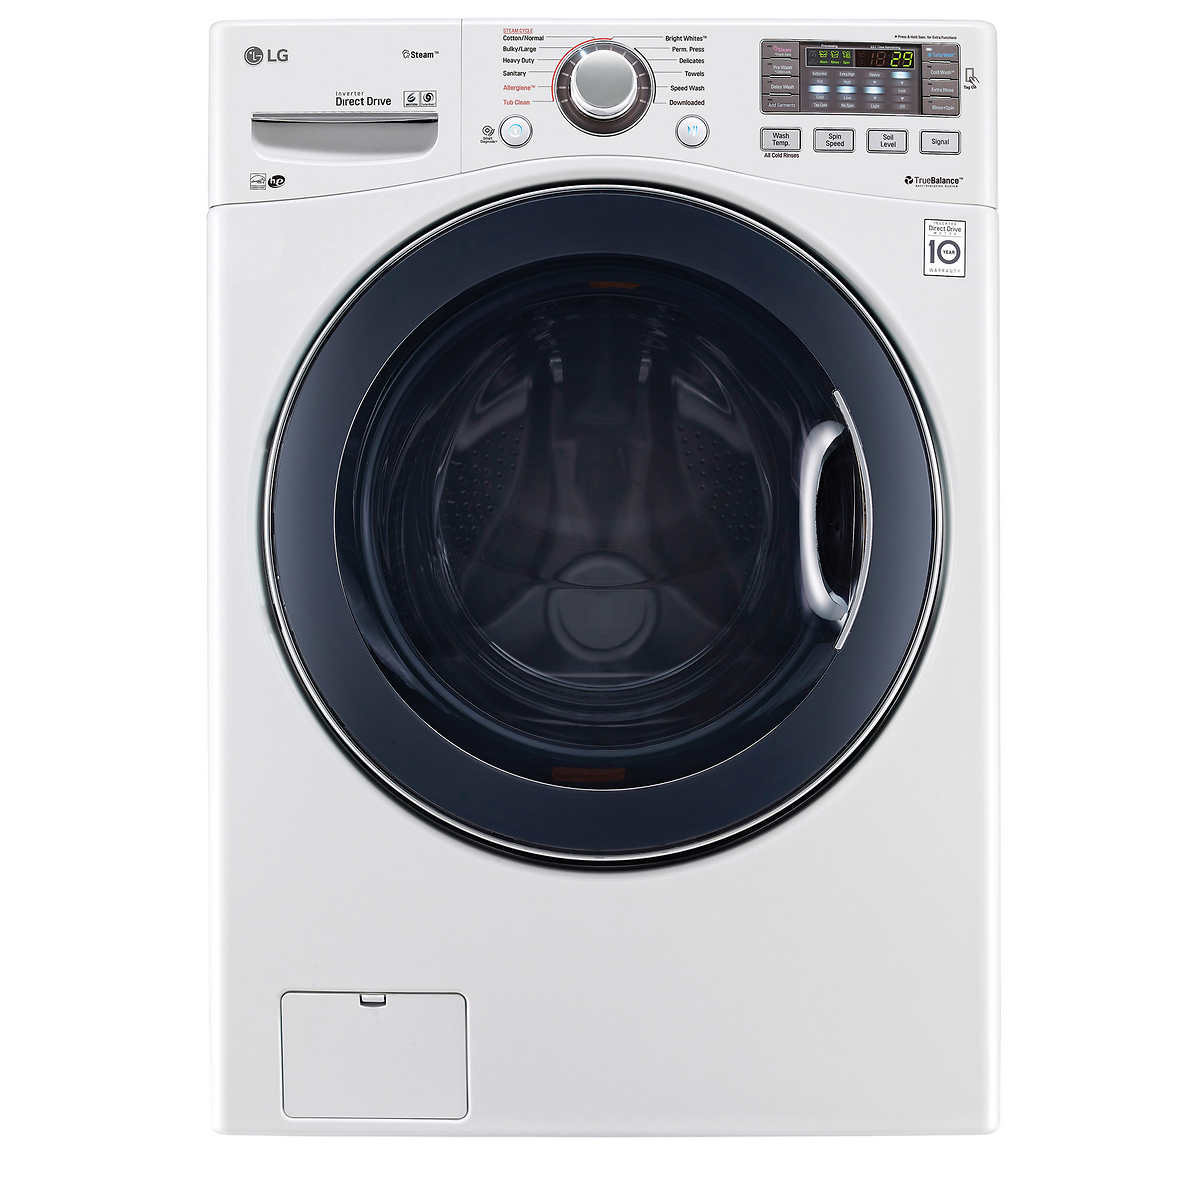 Lg 2 3 cu ft all in one washer and dryer - Member Only Item Lg 4 5cuft Ultra Large Capacity Turbowash Washer In White Wm3770hwa